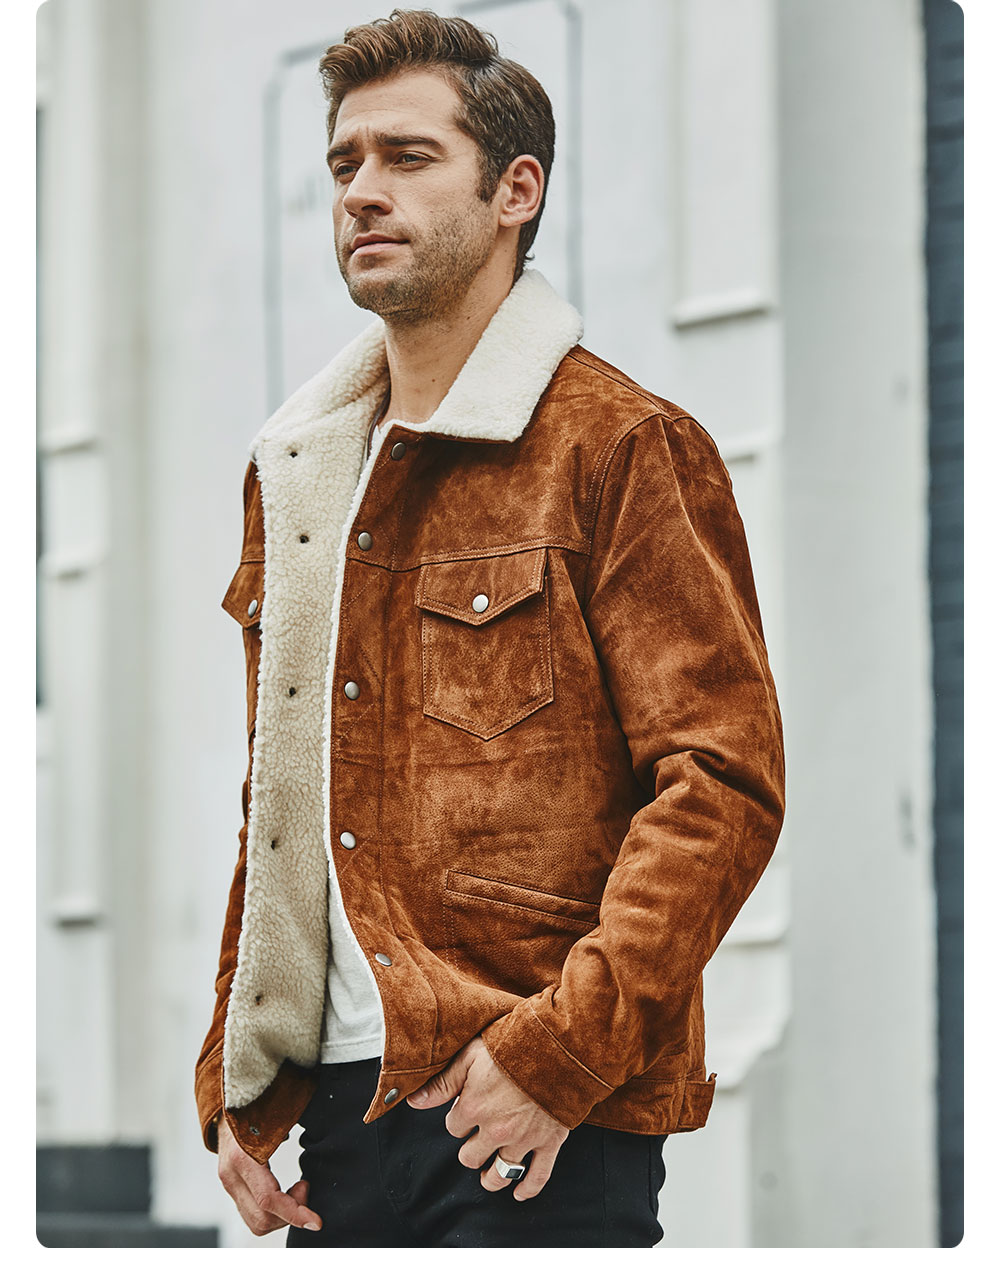 Hd4ac372f1d824a1da35a05acc78fff2eD FLAVOR New Men's Real Leather Jacket Genuine Leather With Faux Shearling Warm Coat Men